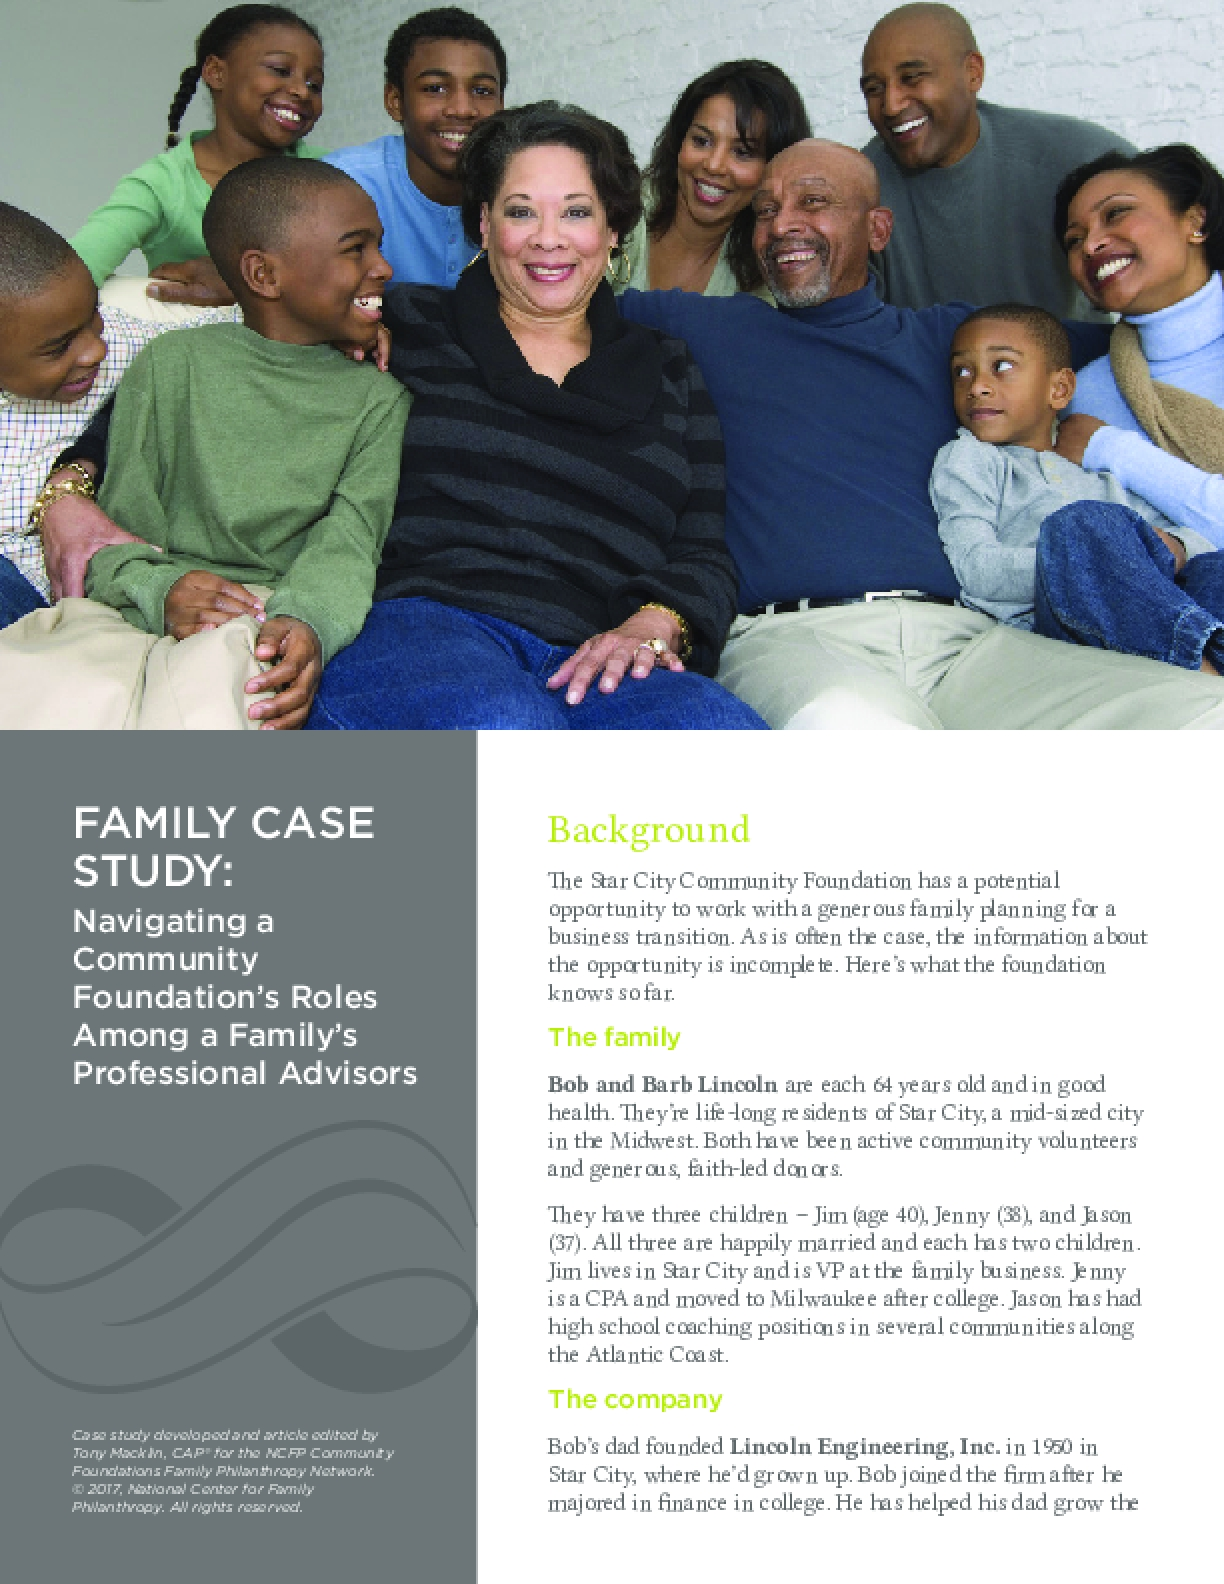 FAMILY CASE STUDY: Navigating a Community Foundation's Roles Among a Family's Professional Advisors